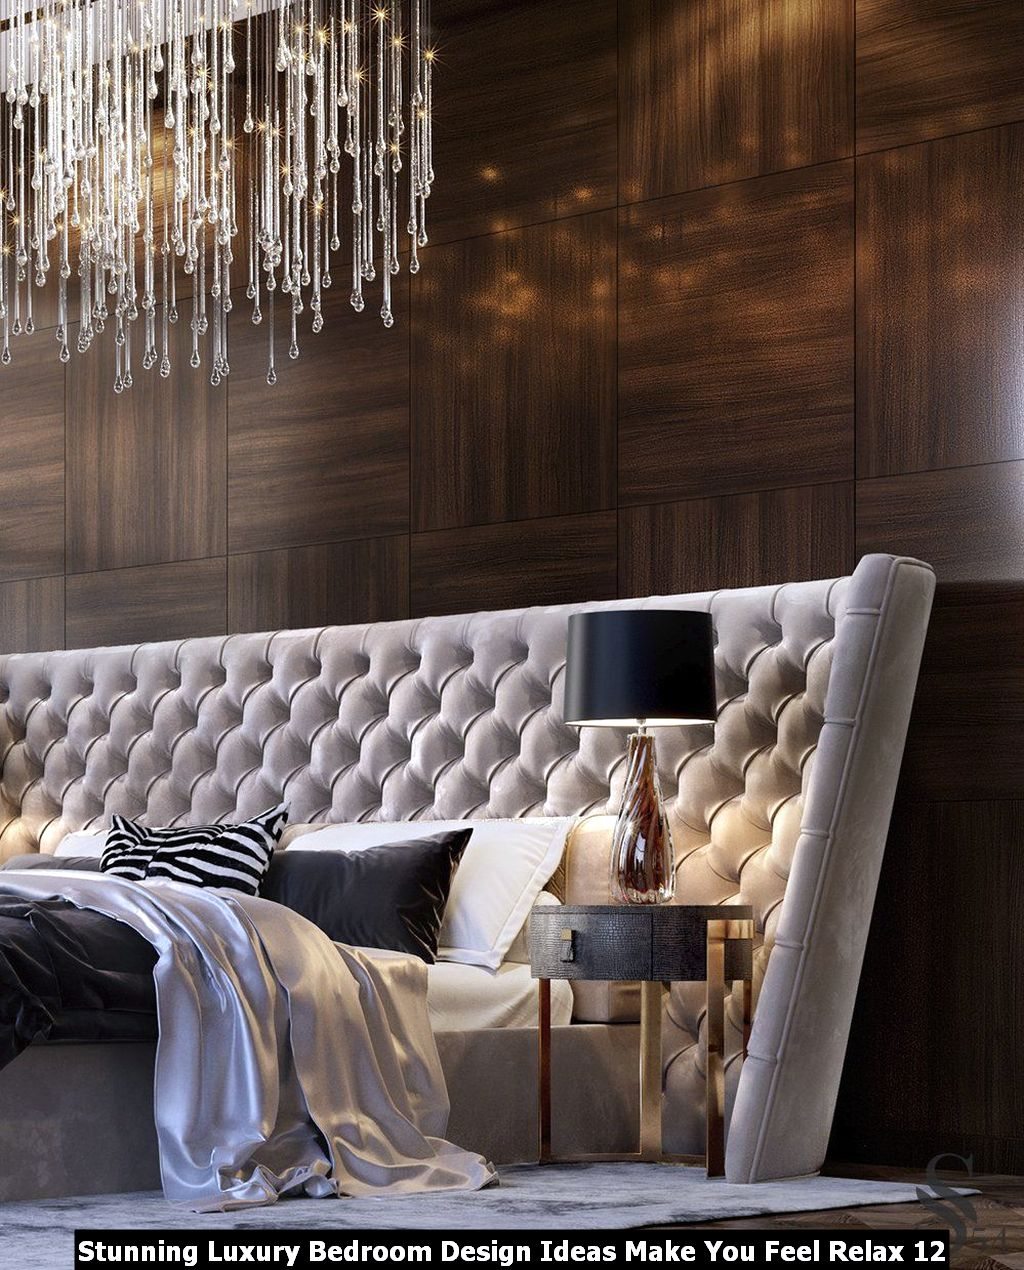 Stunning Luxury Bedroom Design Ideas Make You Feel Relax 12